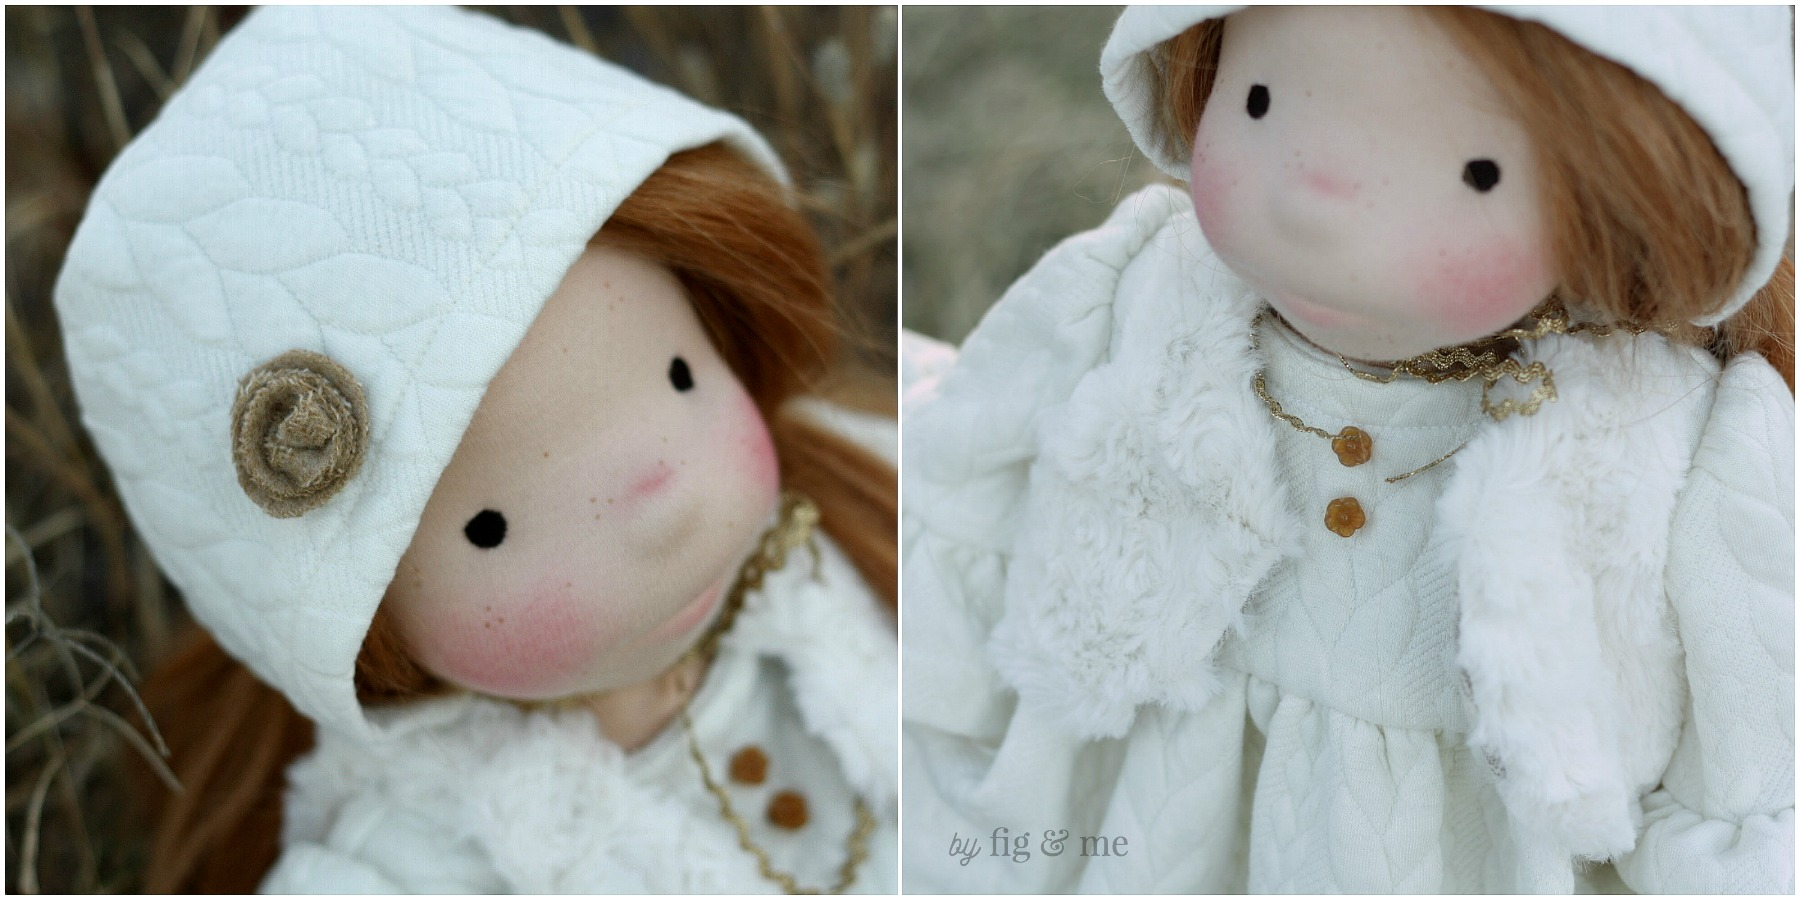 Little details of Pippa's clothing, by Fig and Me.